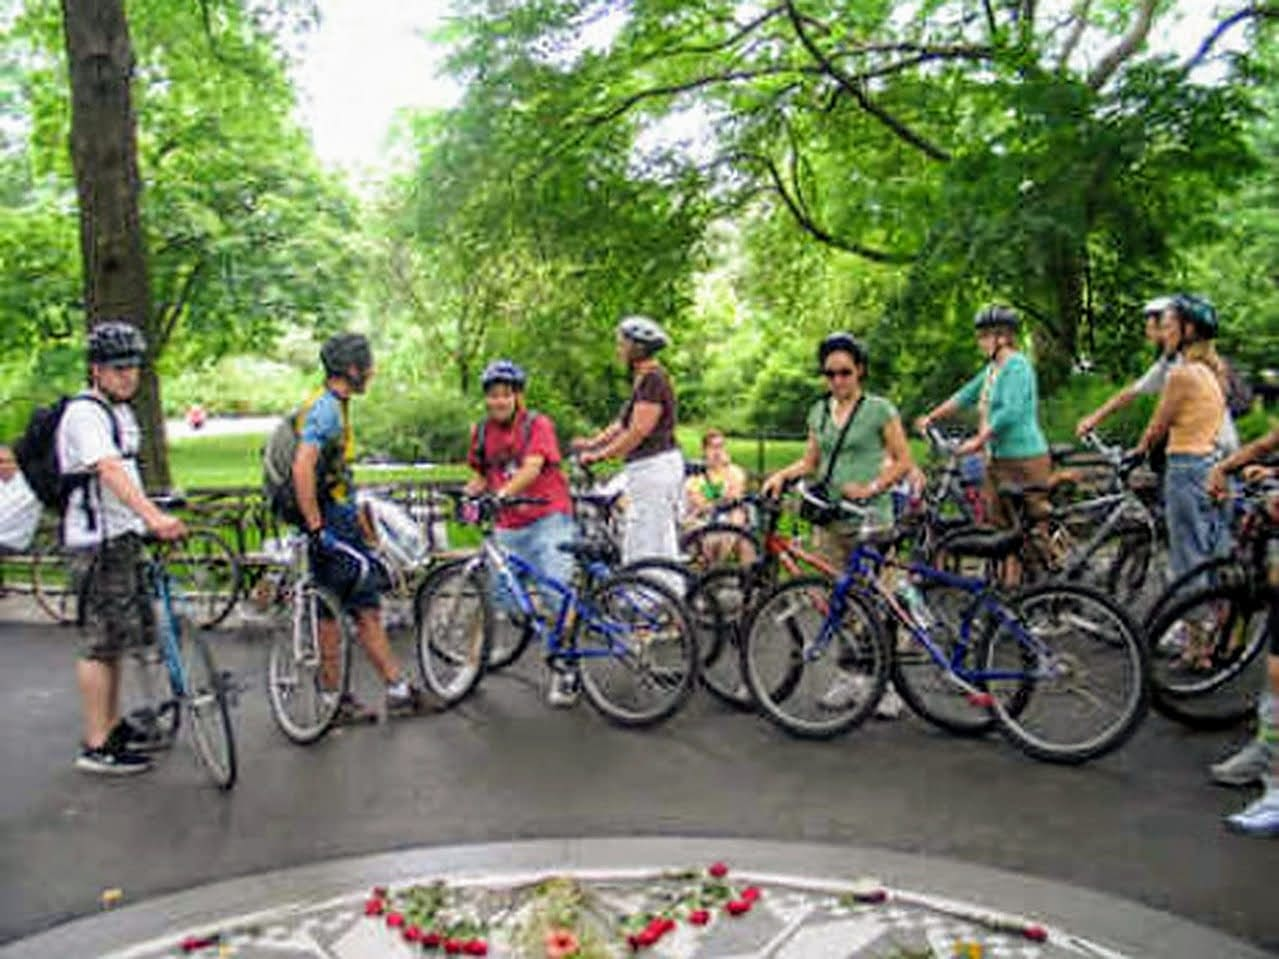 Central Park Bicycle Rental